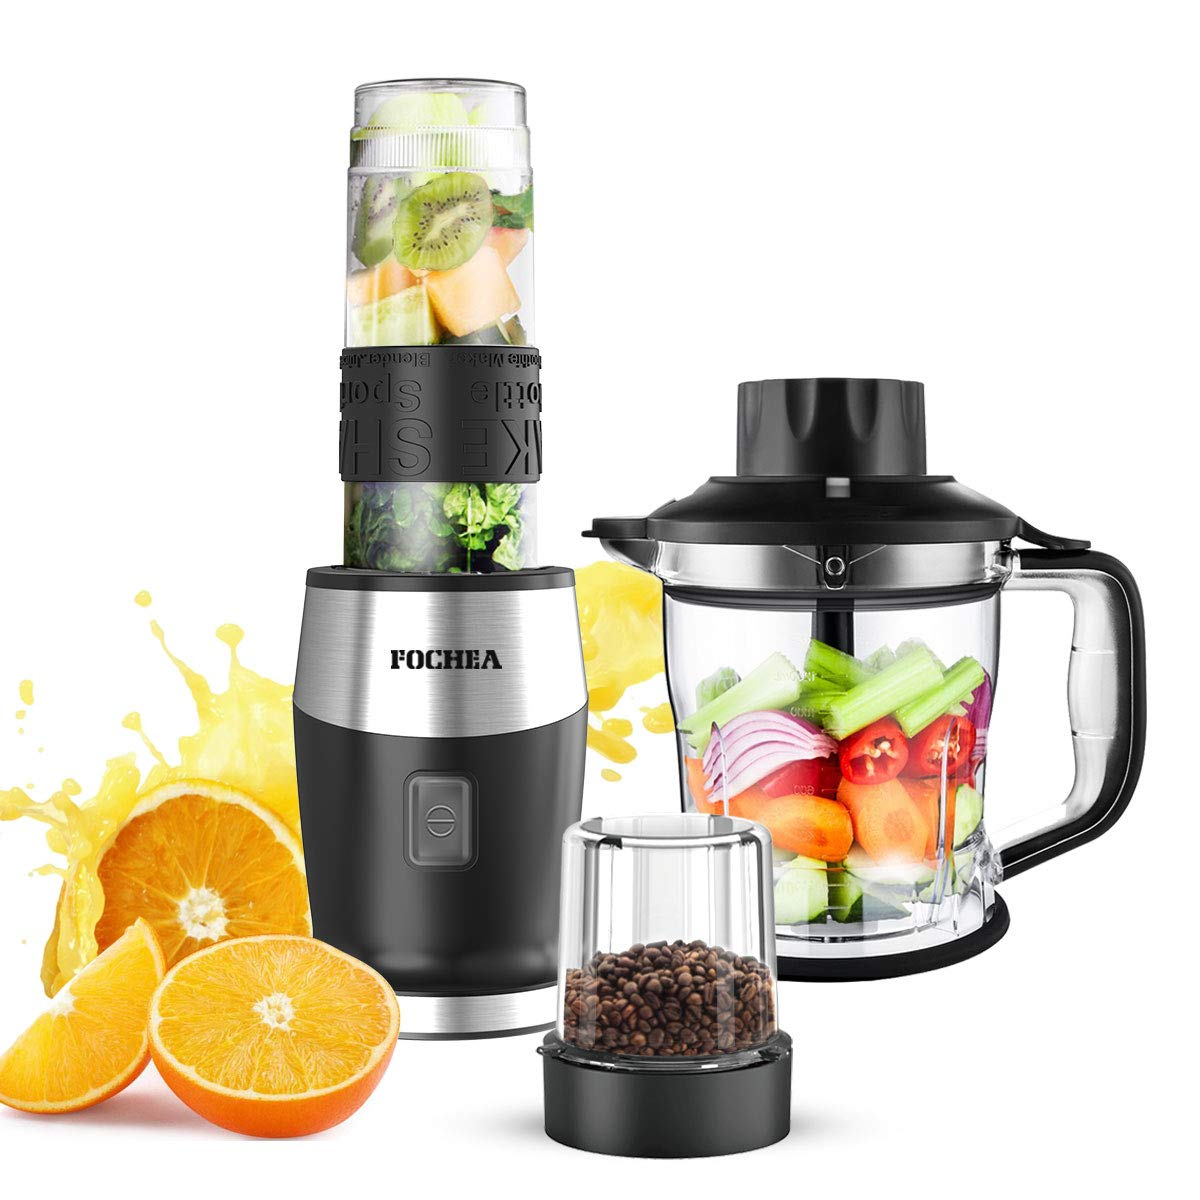 Smoothie Blender, High-Speed Personal Blender for Smoothies and Ice Shakes, 2019 Upgraded 3-in-1 Professional Blender for Mixer / Chopper / Grinder , With 19 Ounce Portable BPA-Free Bottle, 700 Watt by FOCHEA